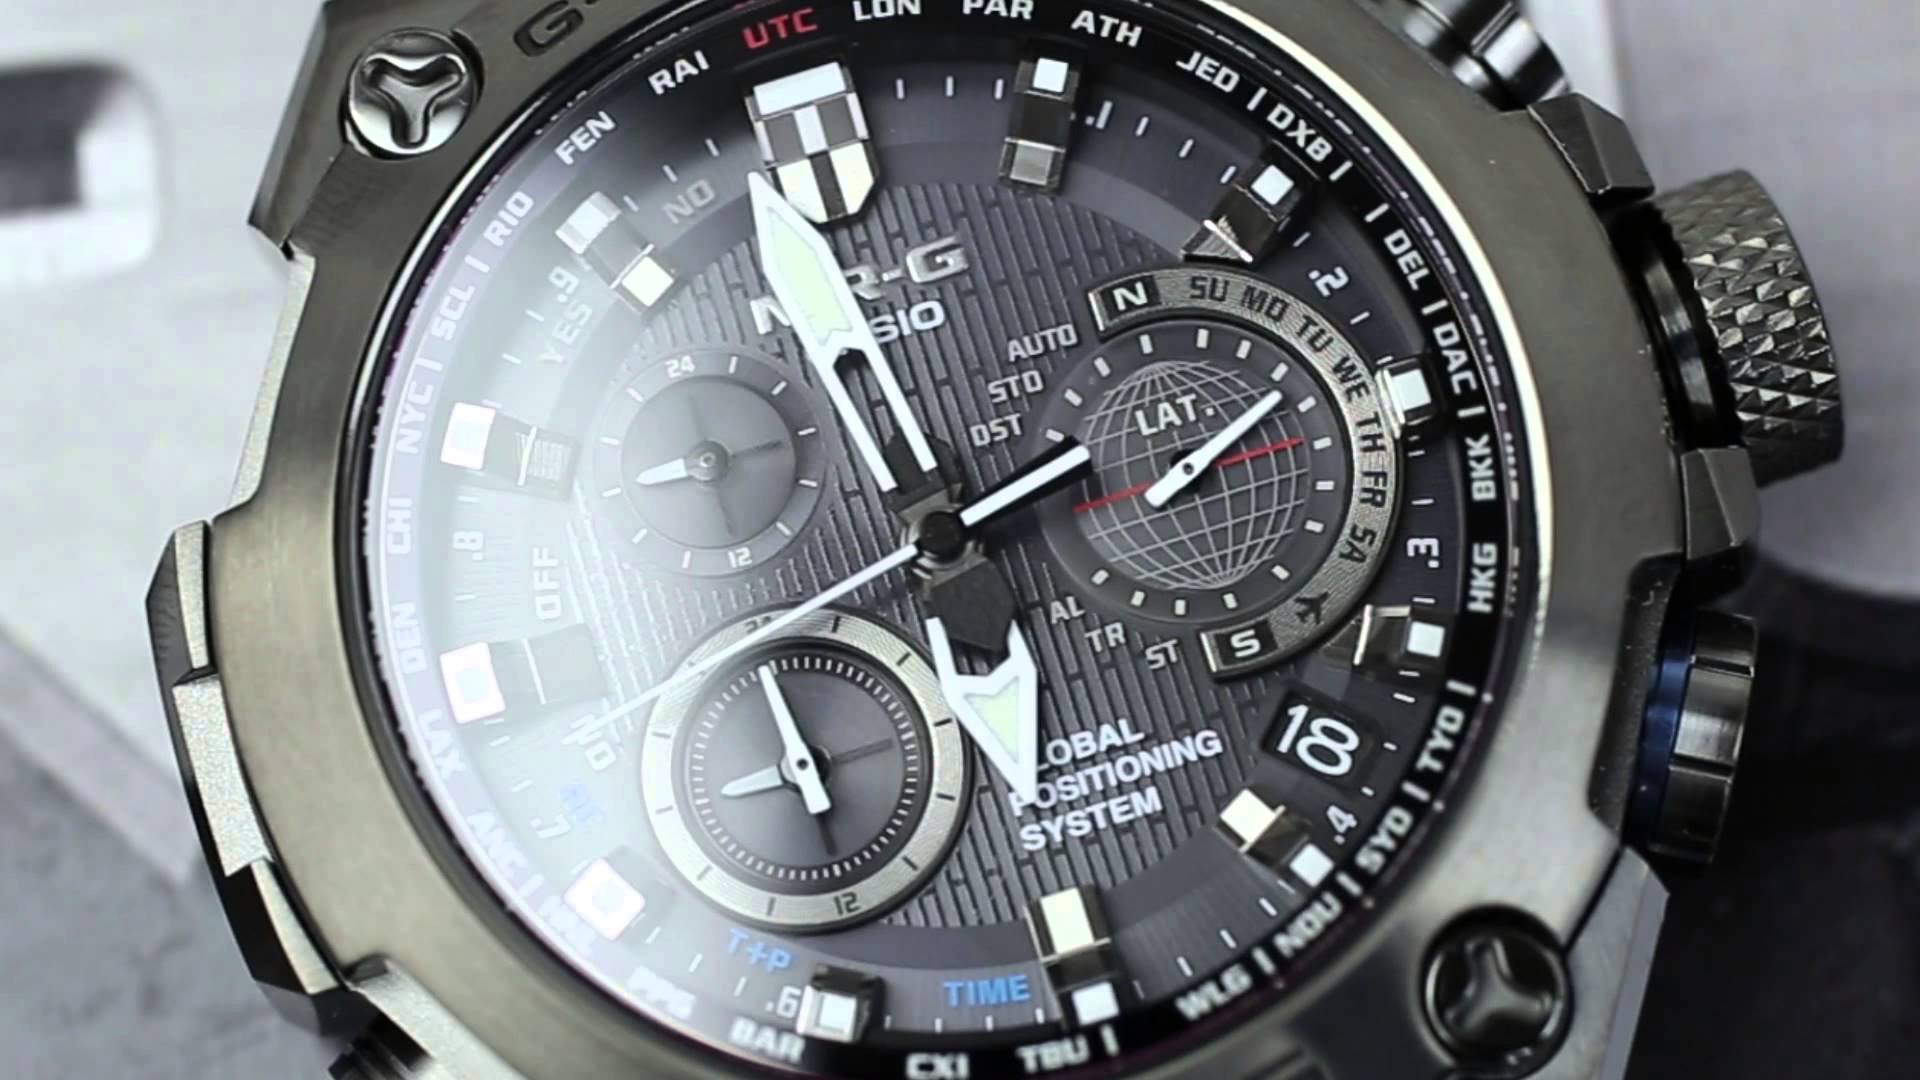 [Video] G-Shock MRGG1000B-1A Absolute Toughness